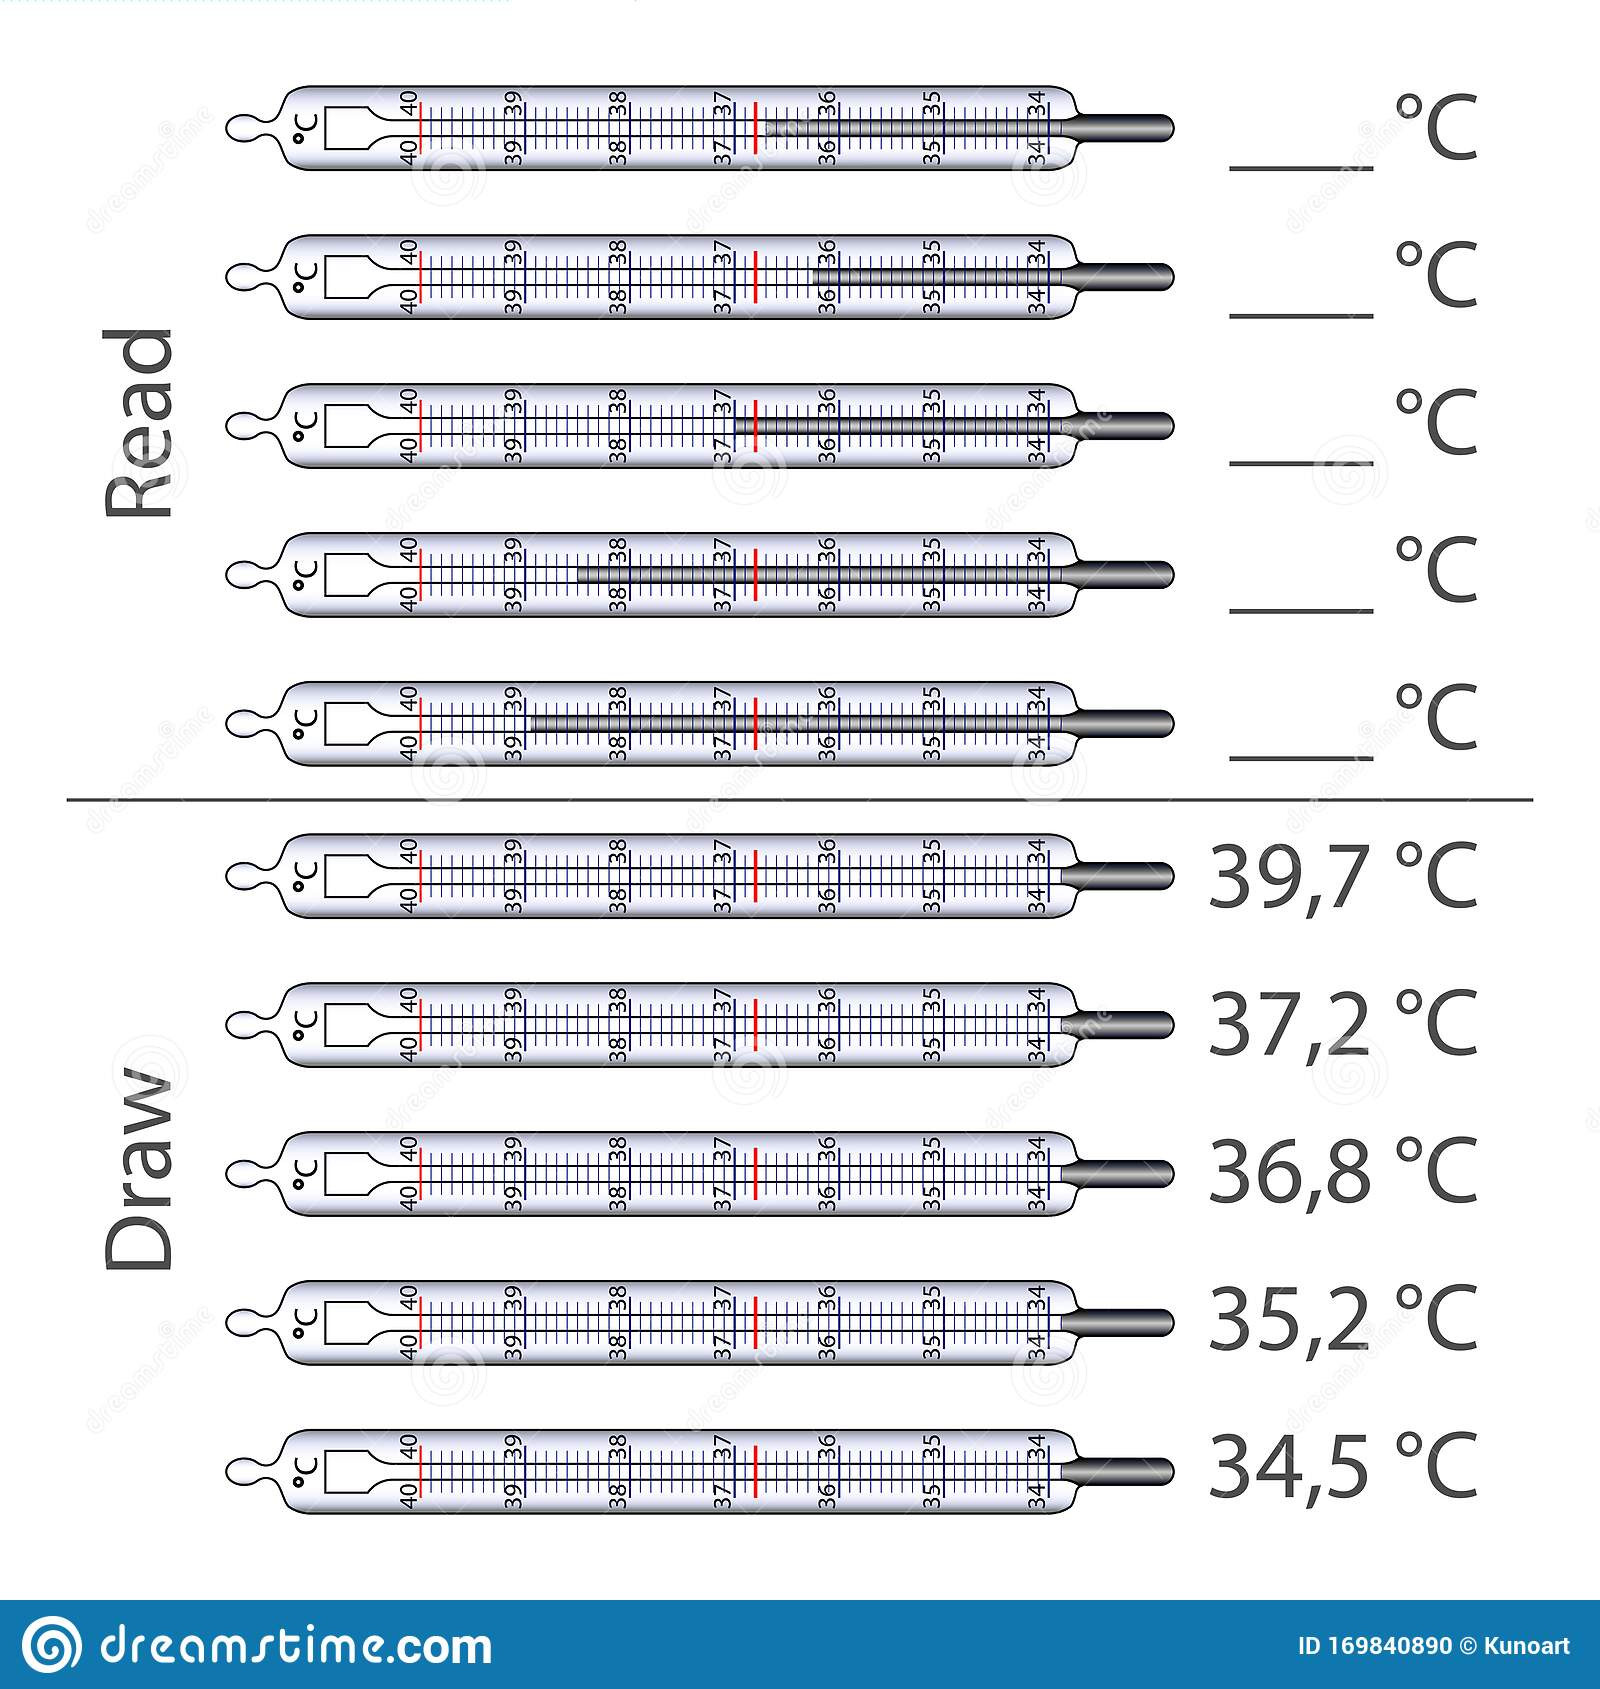 Read A thermometer Worksheet Worksheet to Study the Scale Mercury thermometer Stock